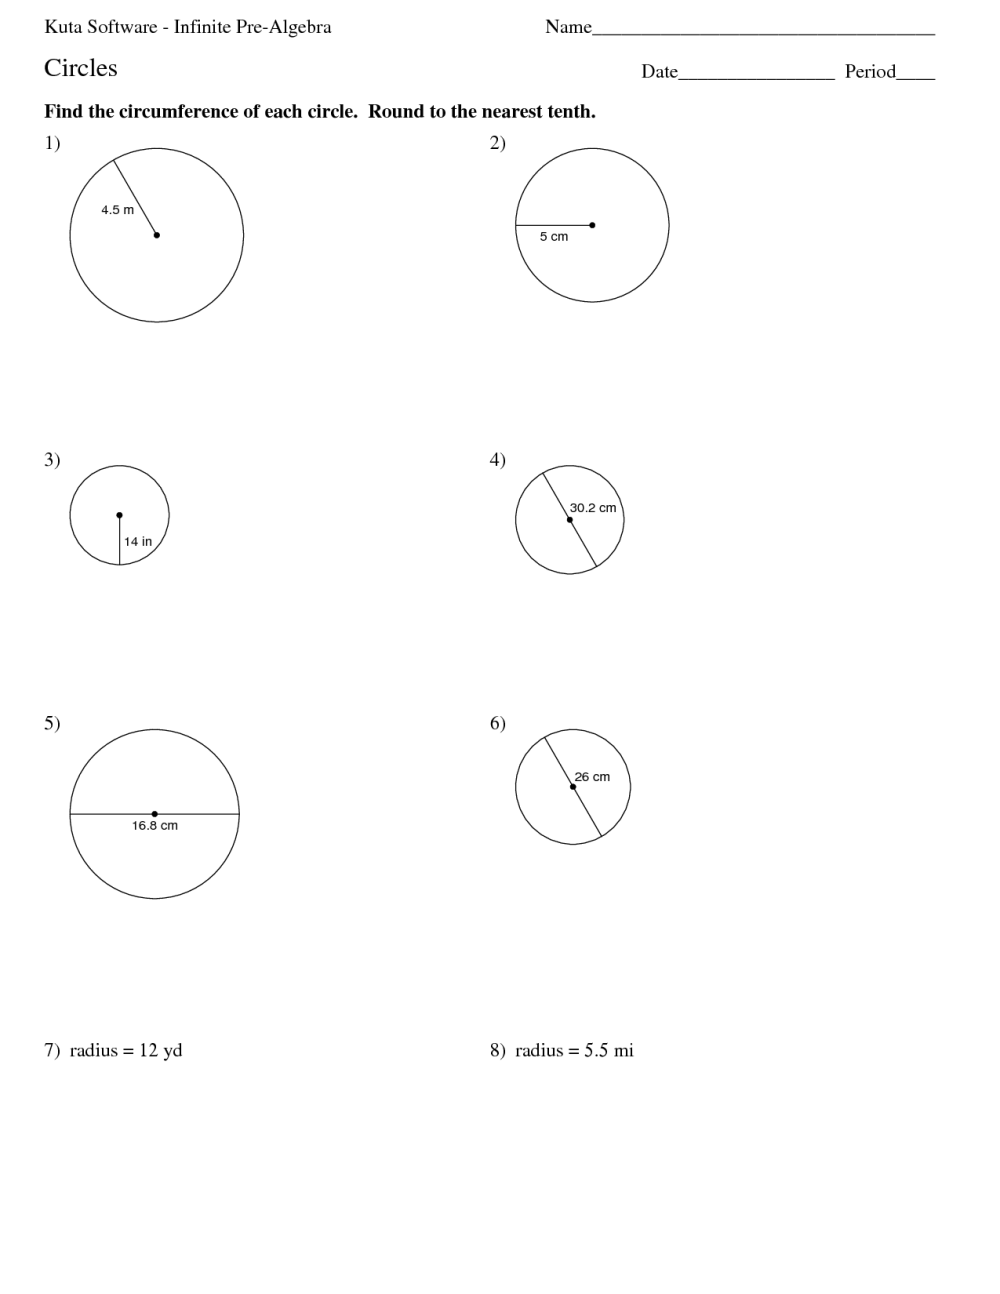 medium resolution of Circles And Circumference Worksheets   Printable Worksheets and Activities  for Teachers